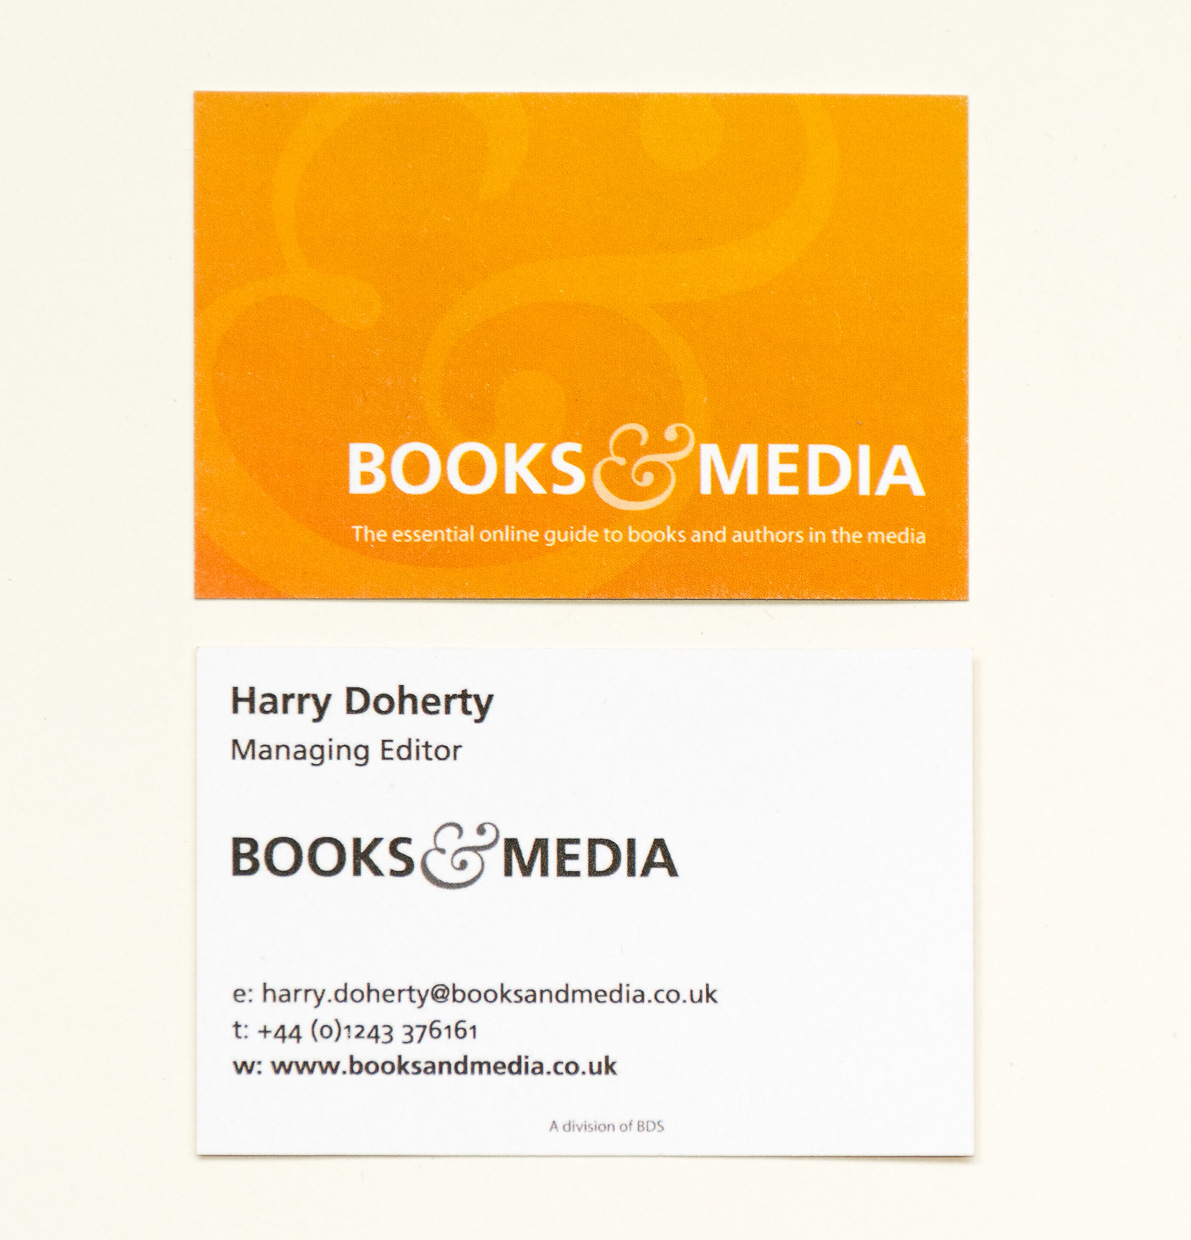 Books & Media business card for Harry Doherty front and rear